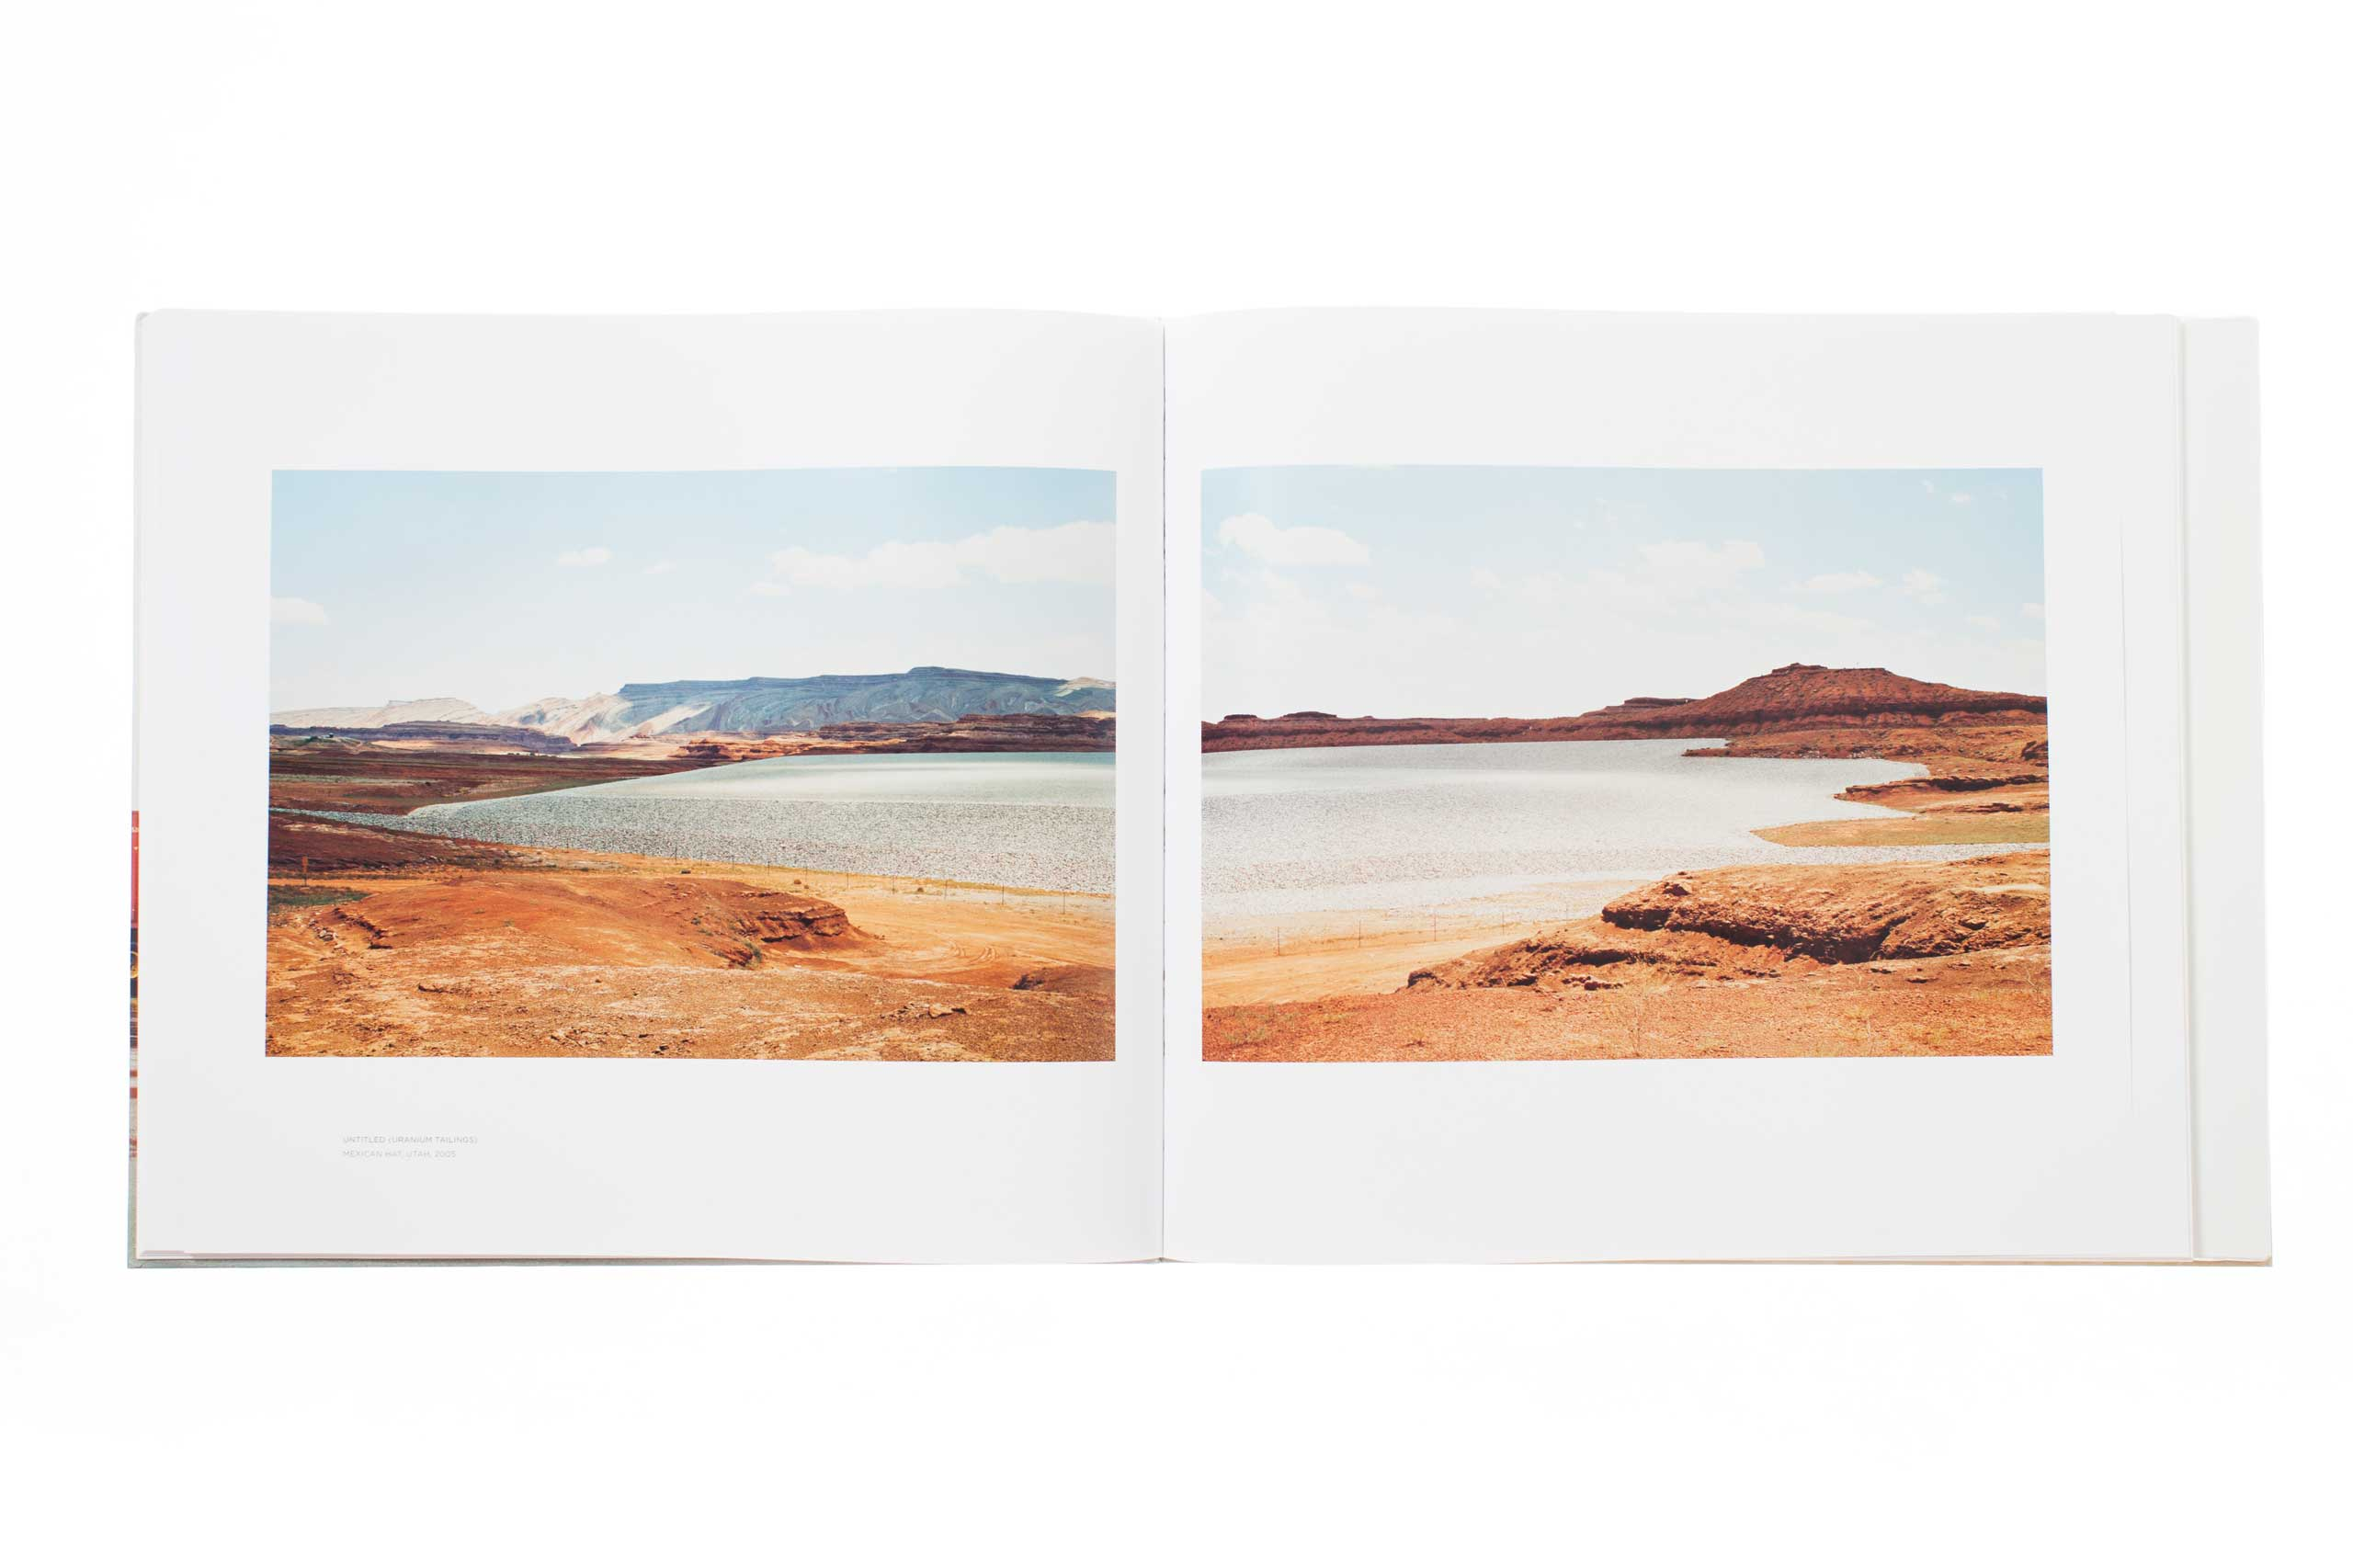 Taxonomy of a Landscape  Sambunaris' large format landscape photographs are presented through a clean, modern design aesthetic in the main book.